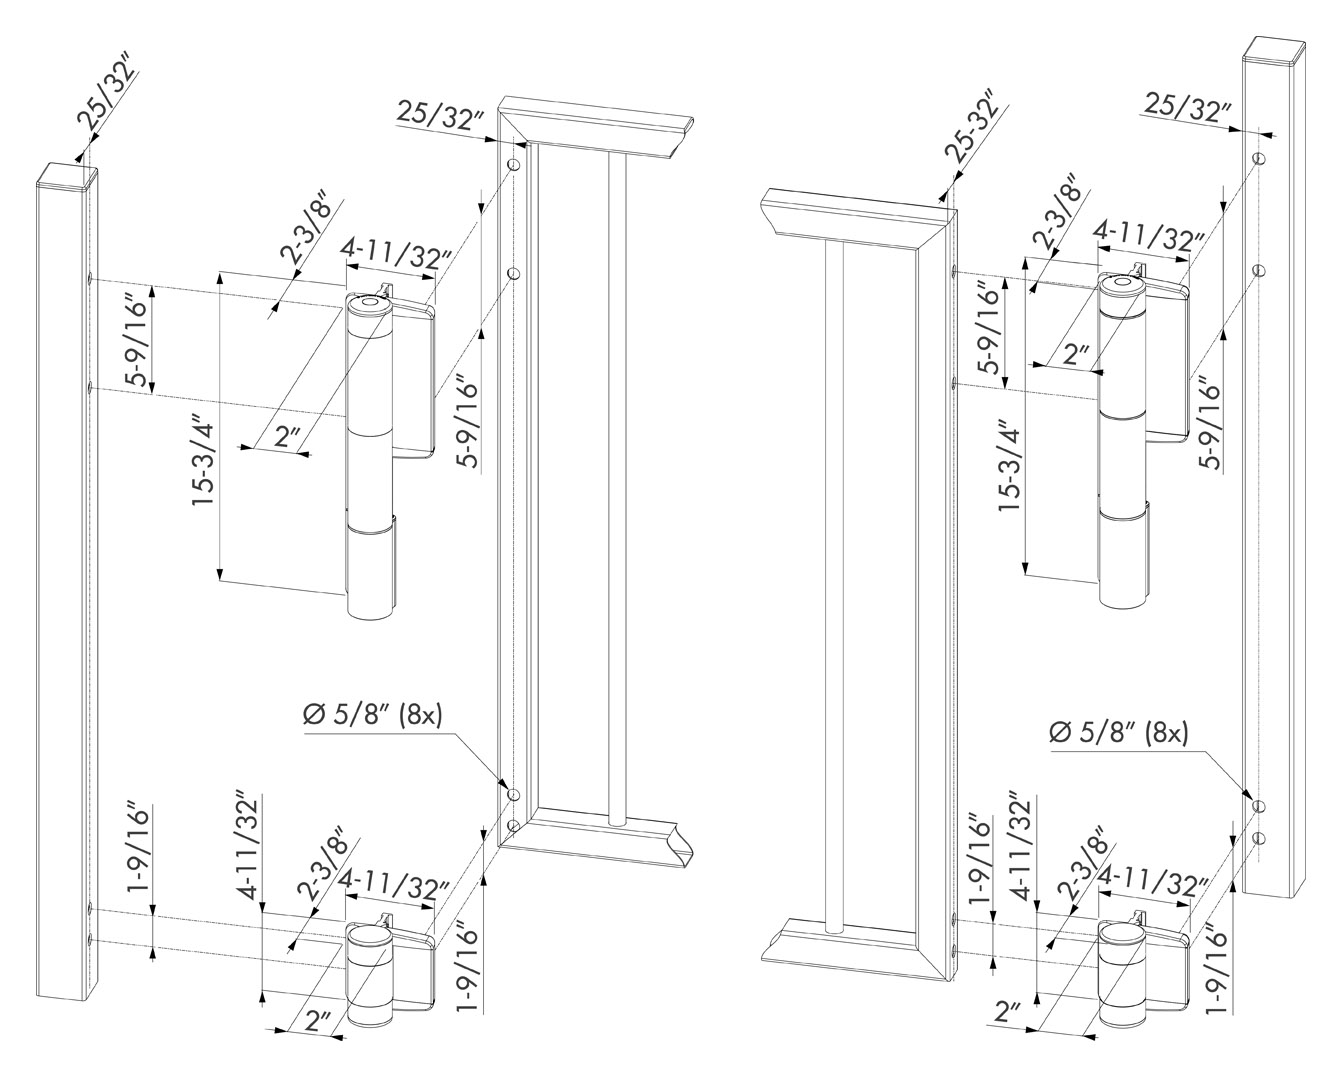 Locinox Mammoth180 Self Closing Hinge Set Hoover Fence Co Mammoth Wiring Diagram 180 Specifications